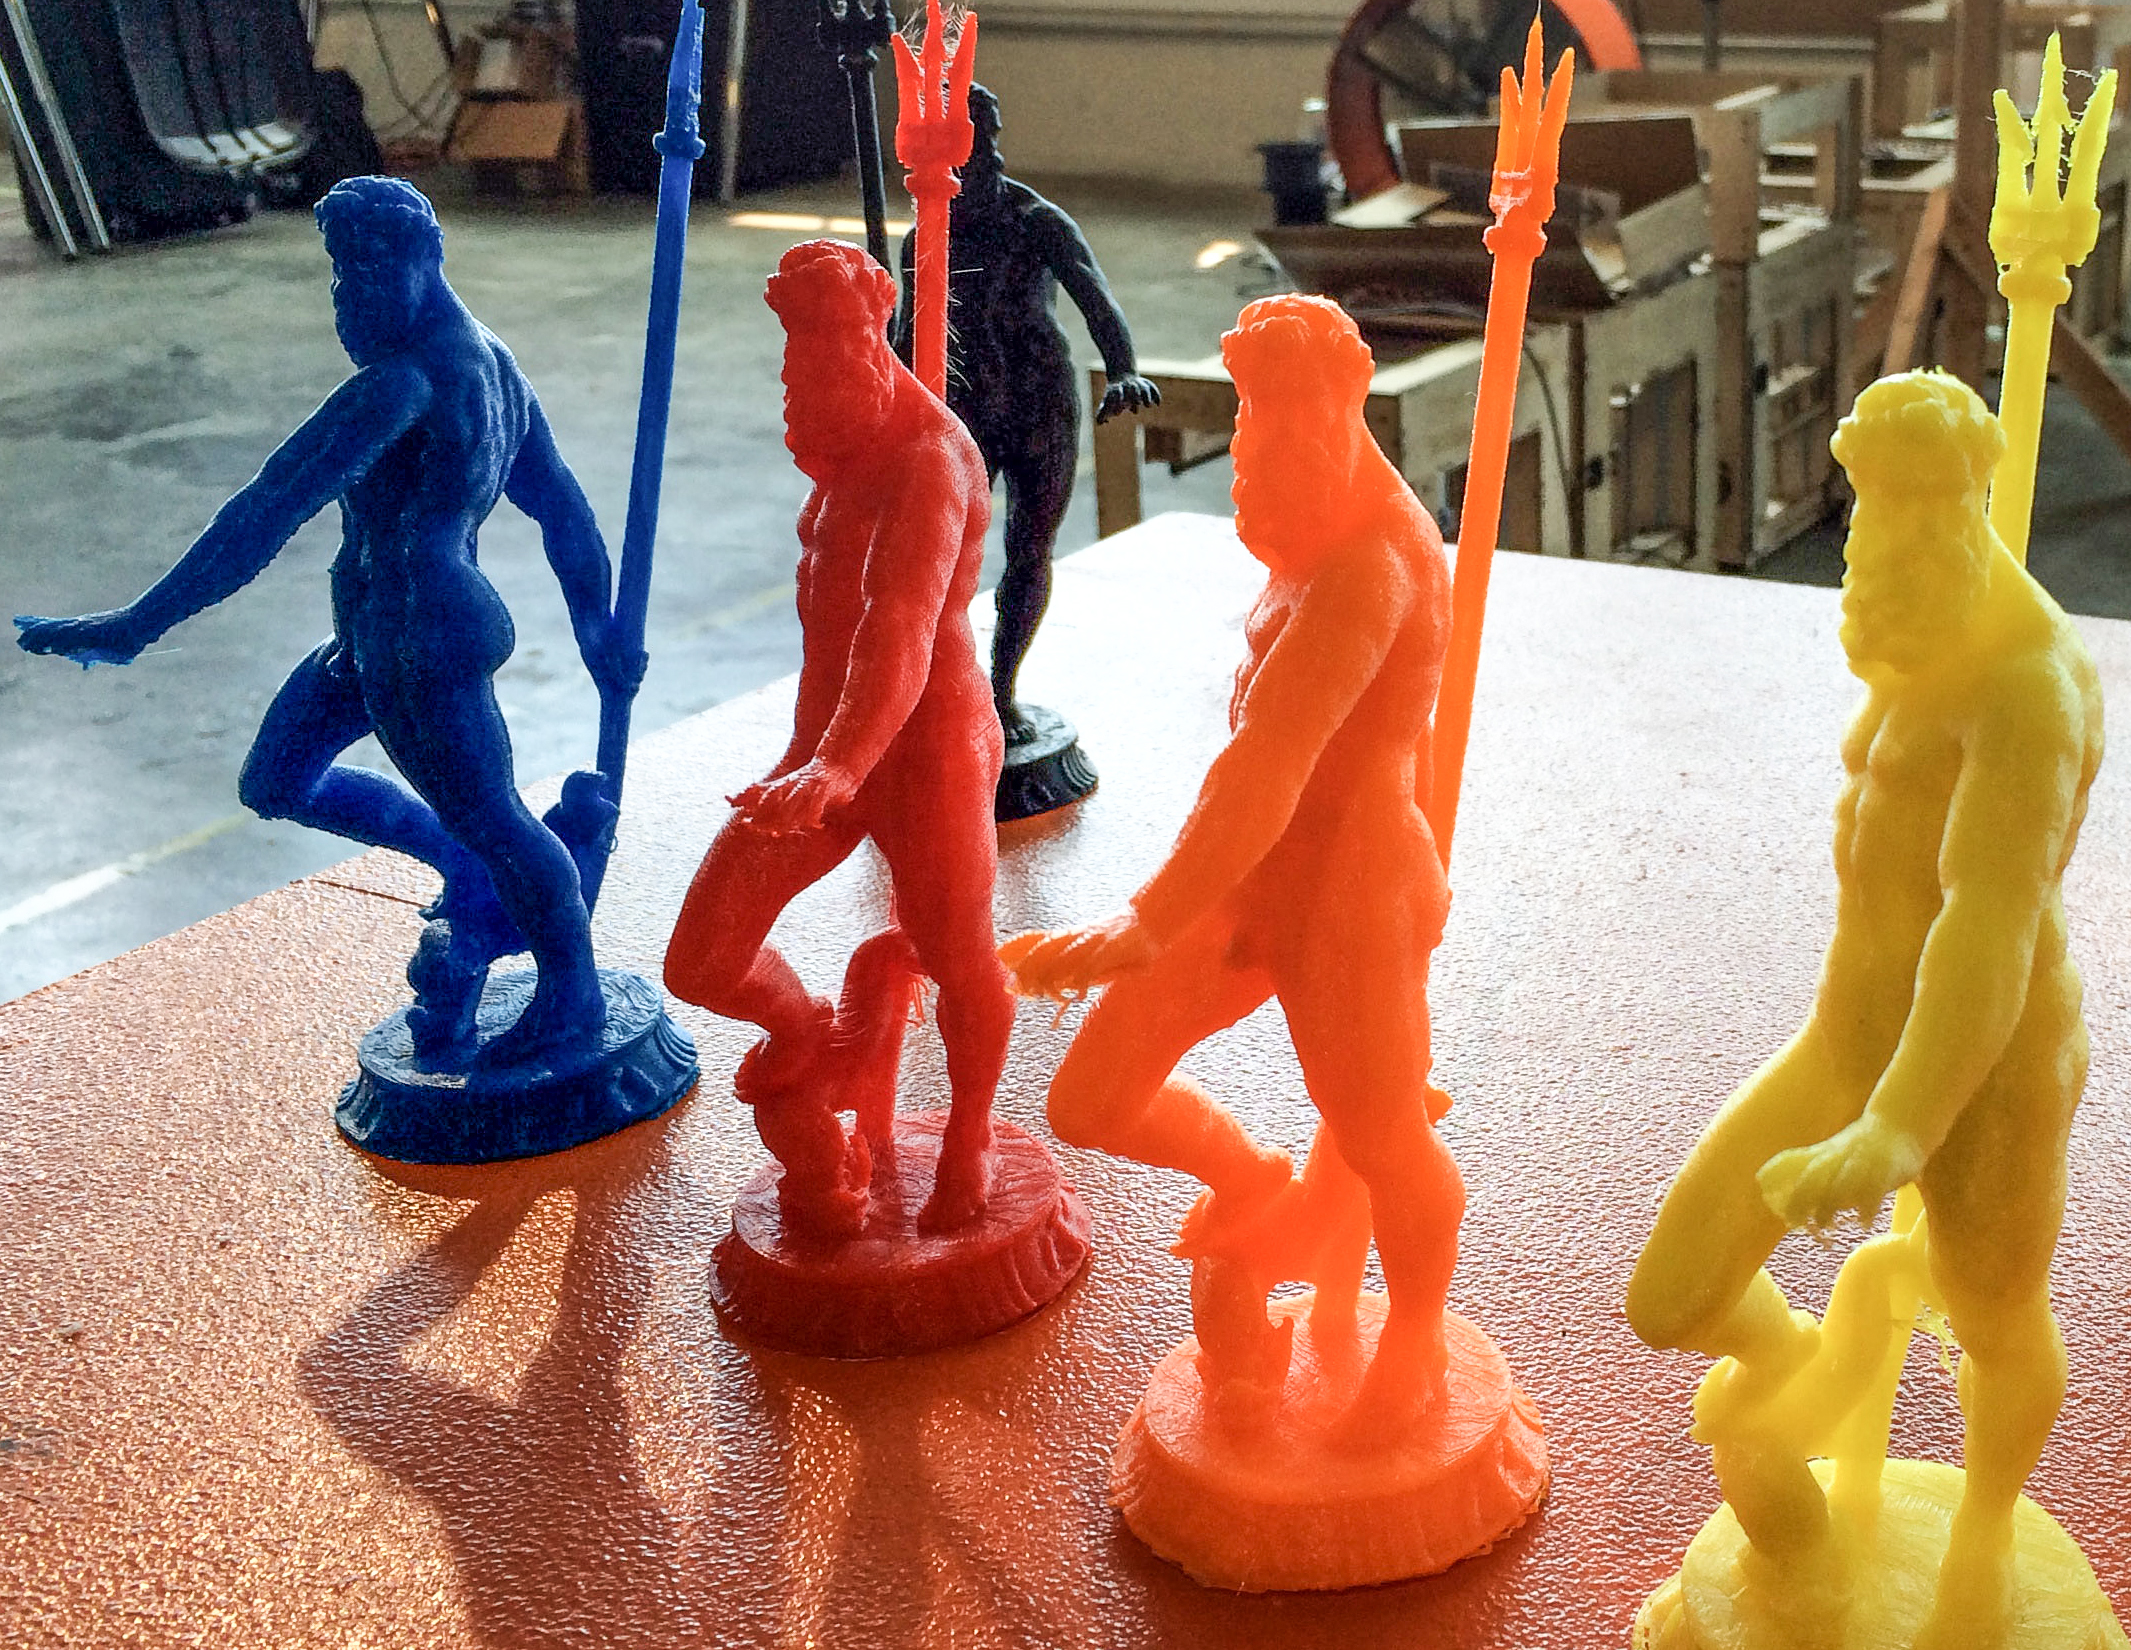 Figurines of the god Neptune made in Type A Machines' production space in San Leandro. (Aaron Mendelson/KQED)